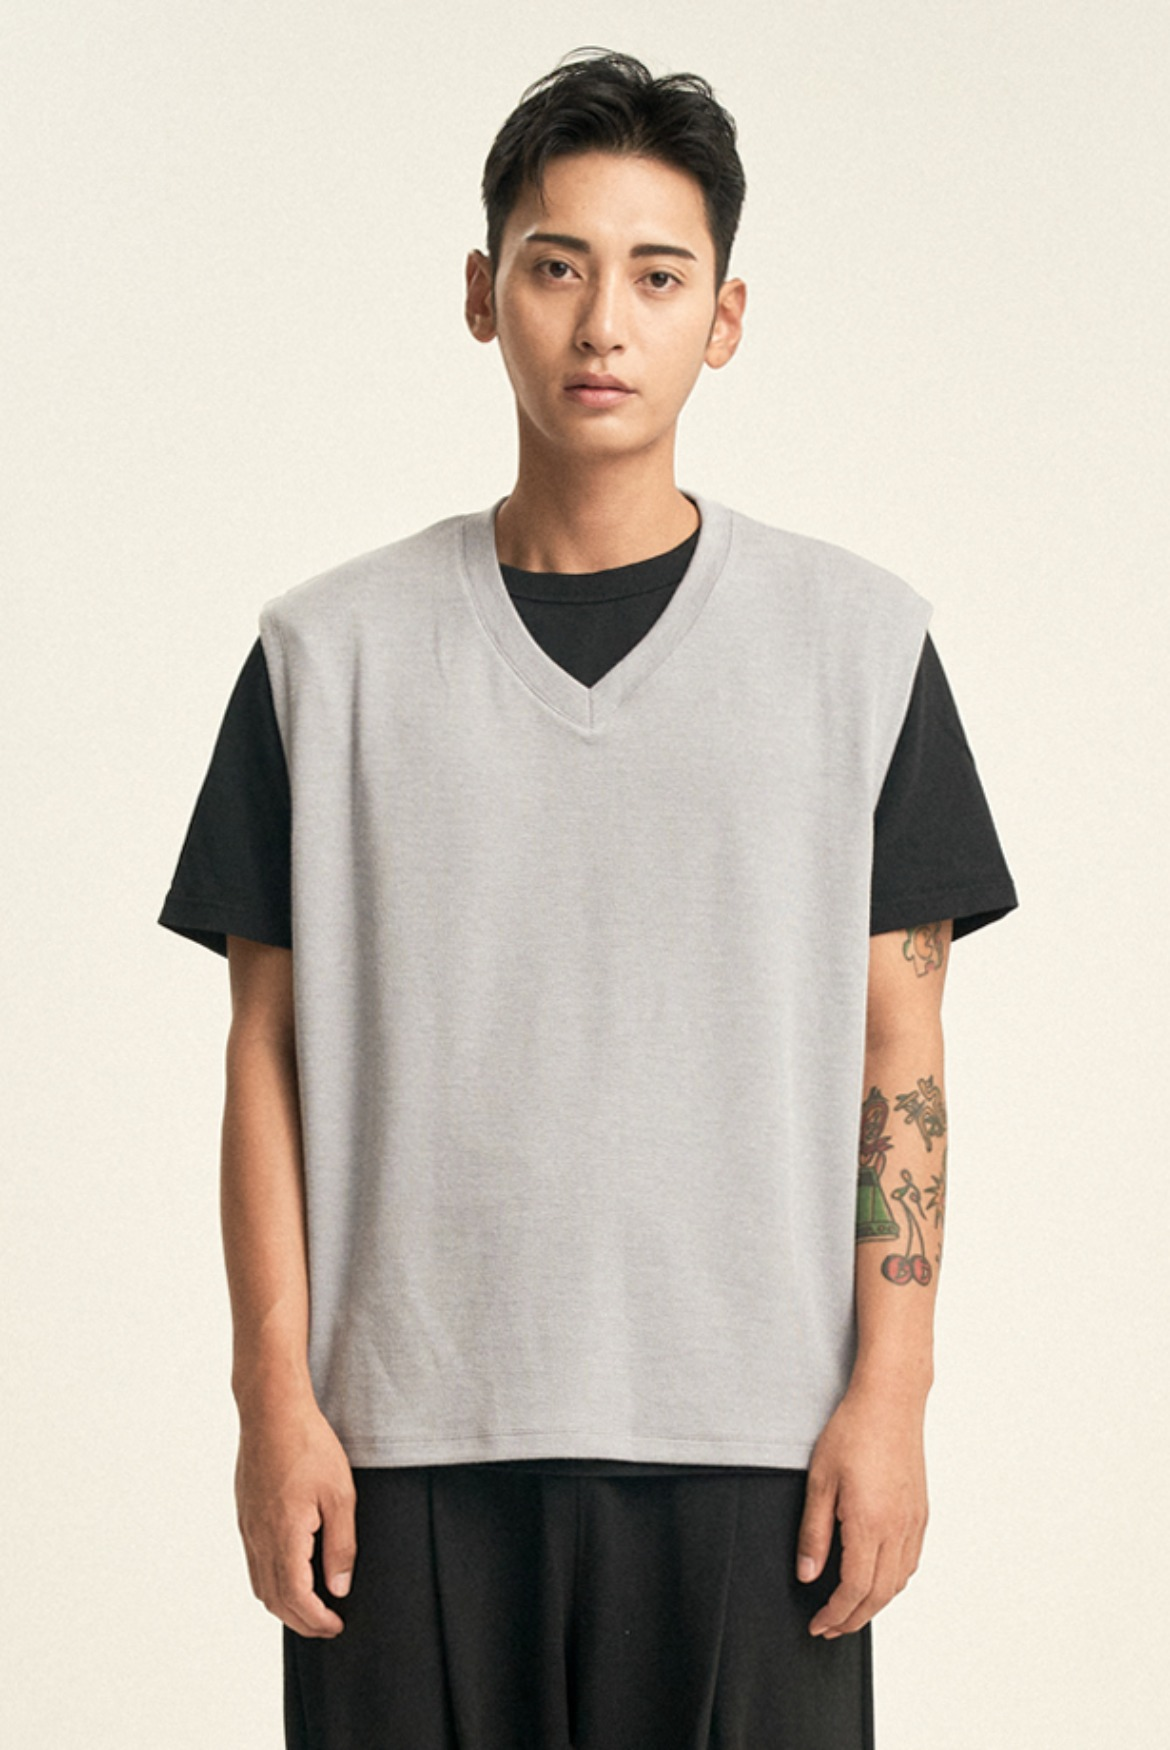 Silky V-Neck Vest [Light Grey]